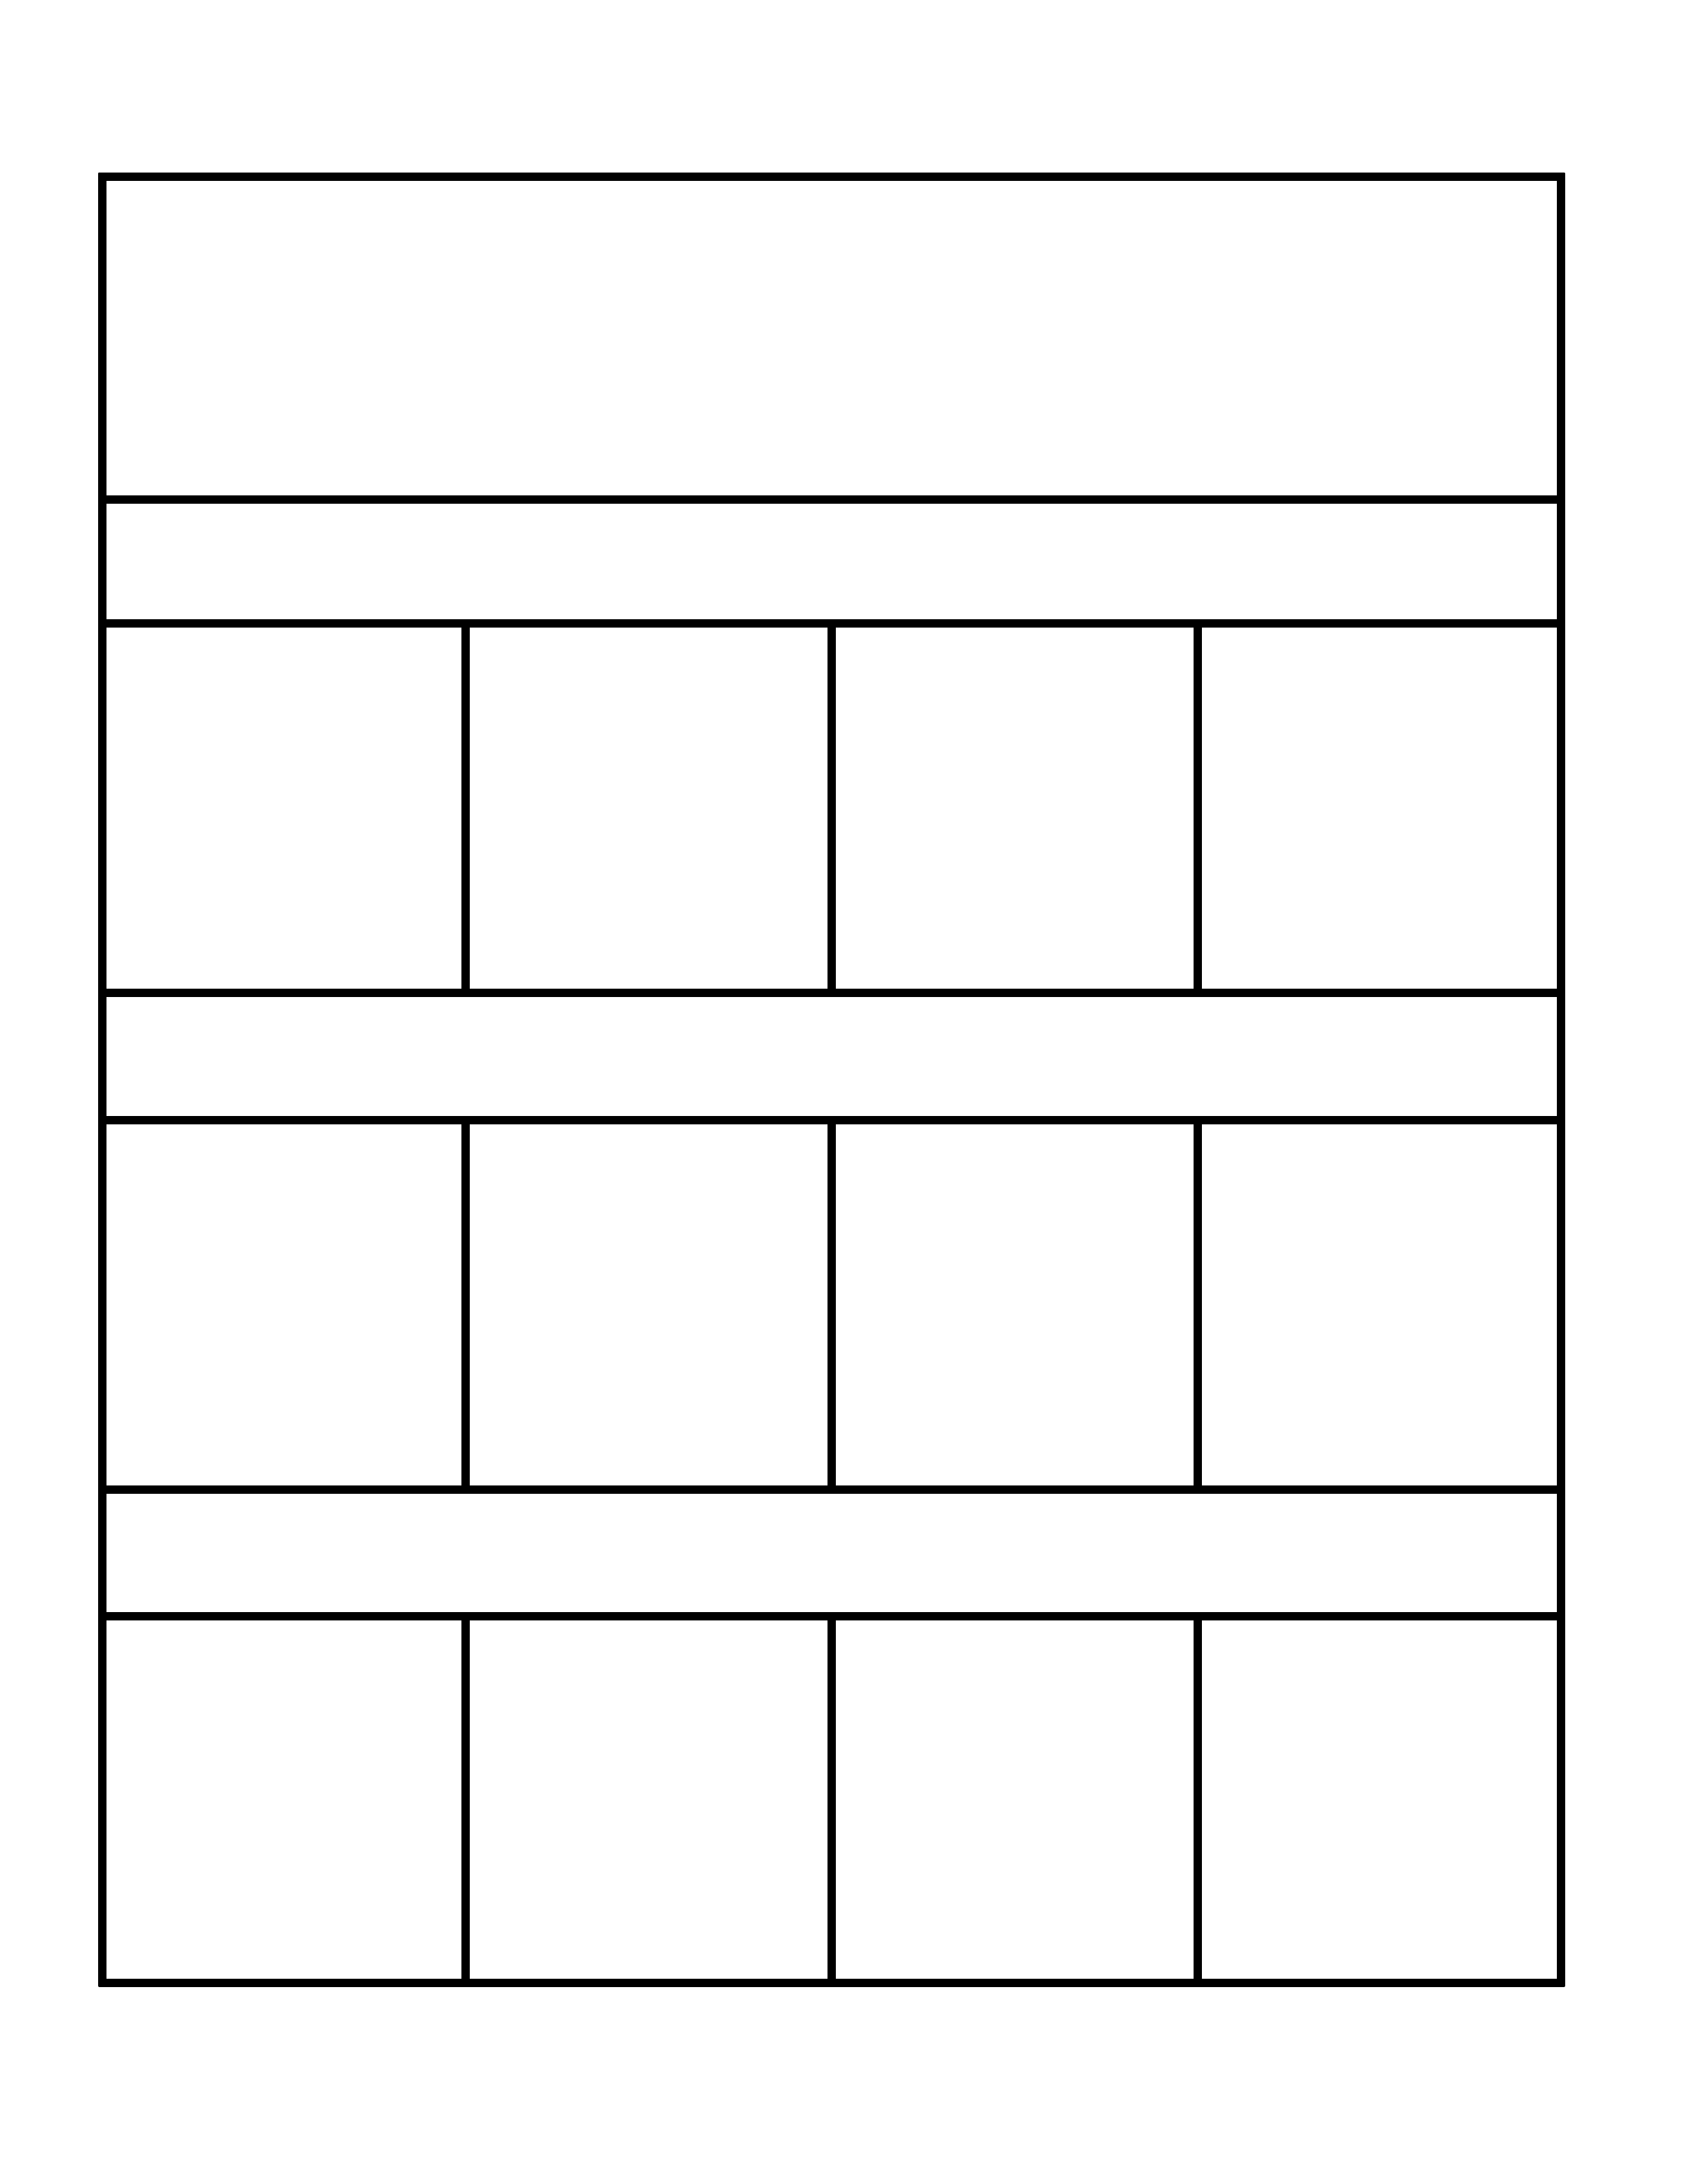 graph template for kids - preschool kids chore chart template free download